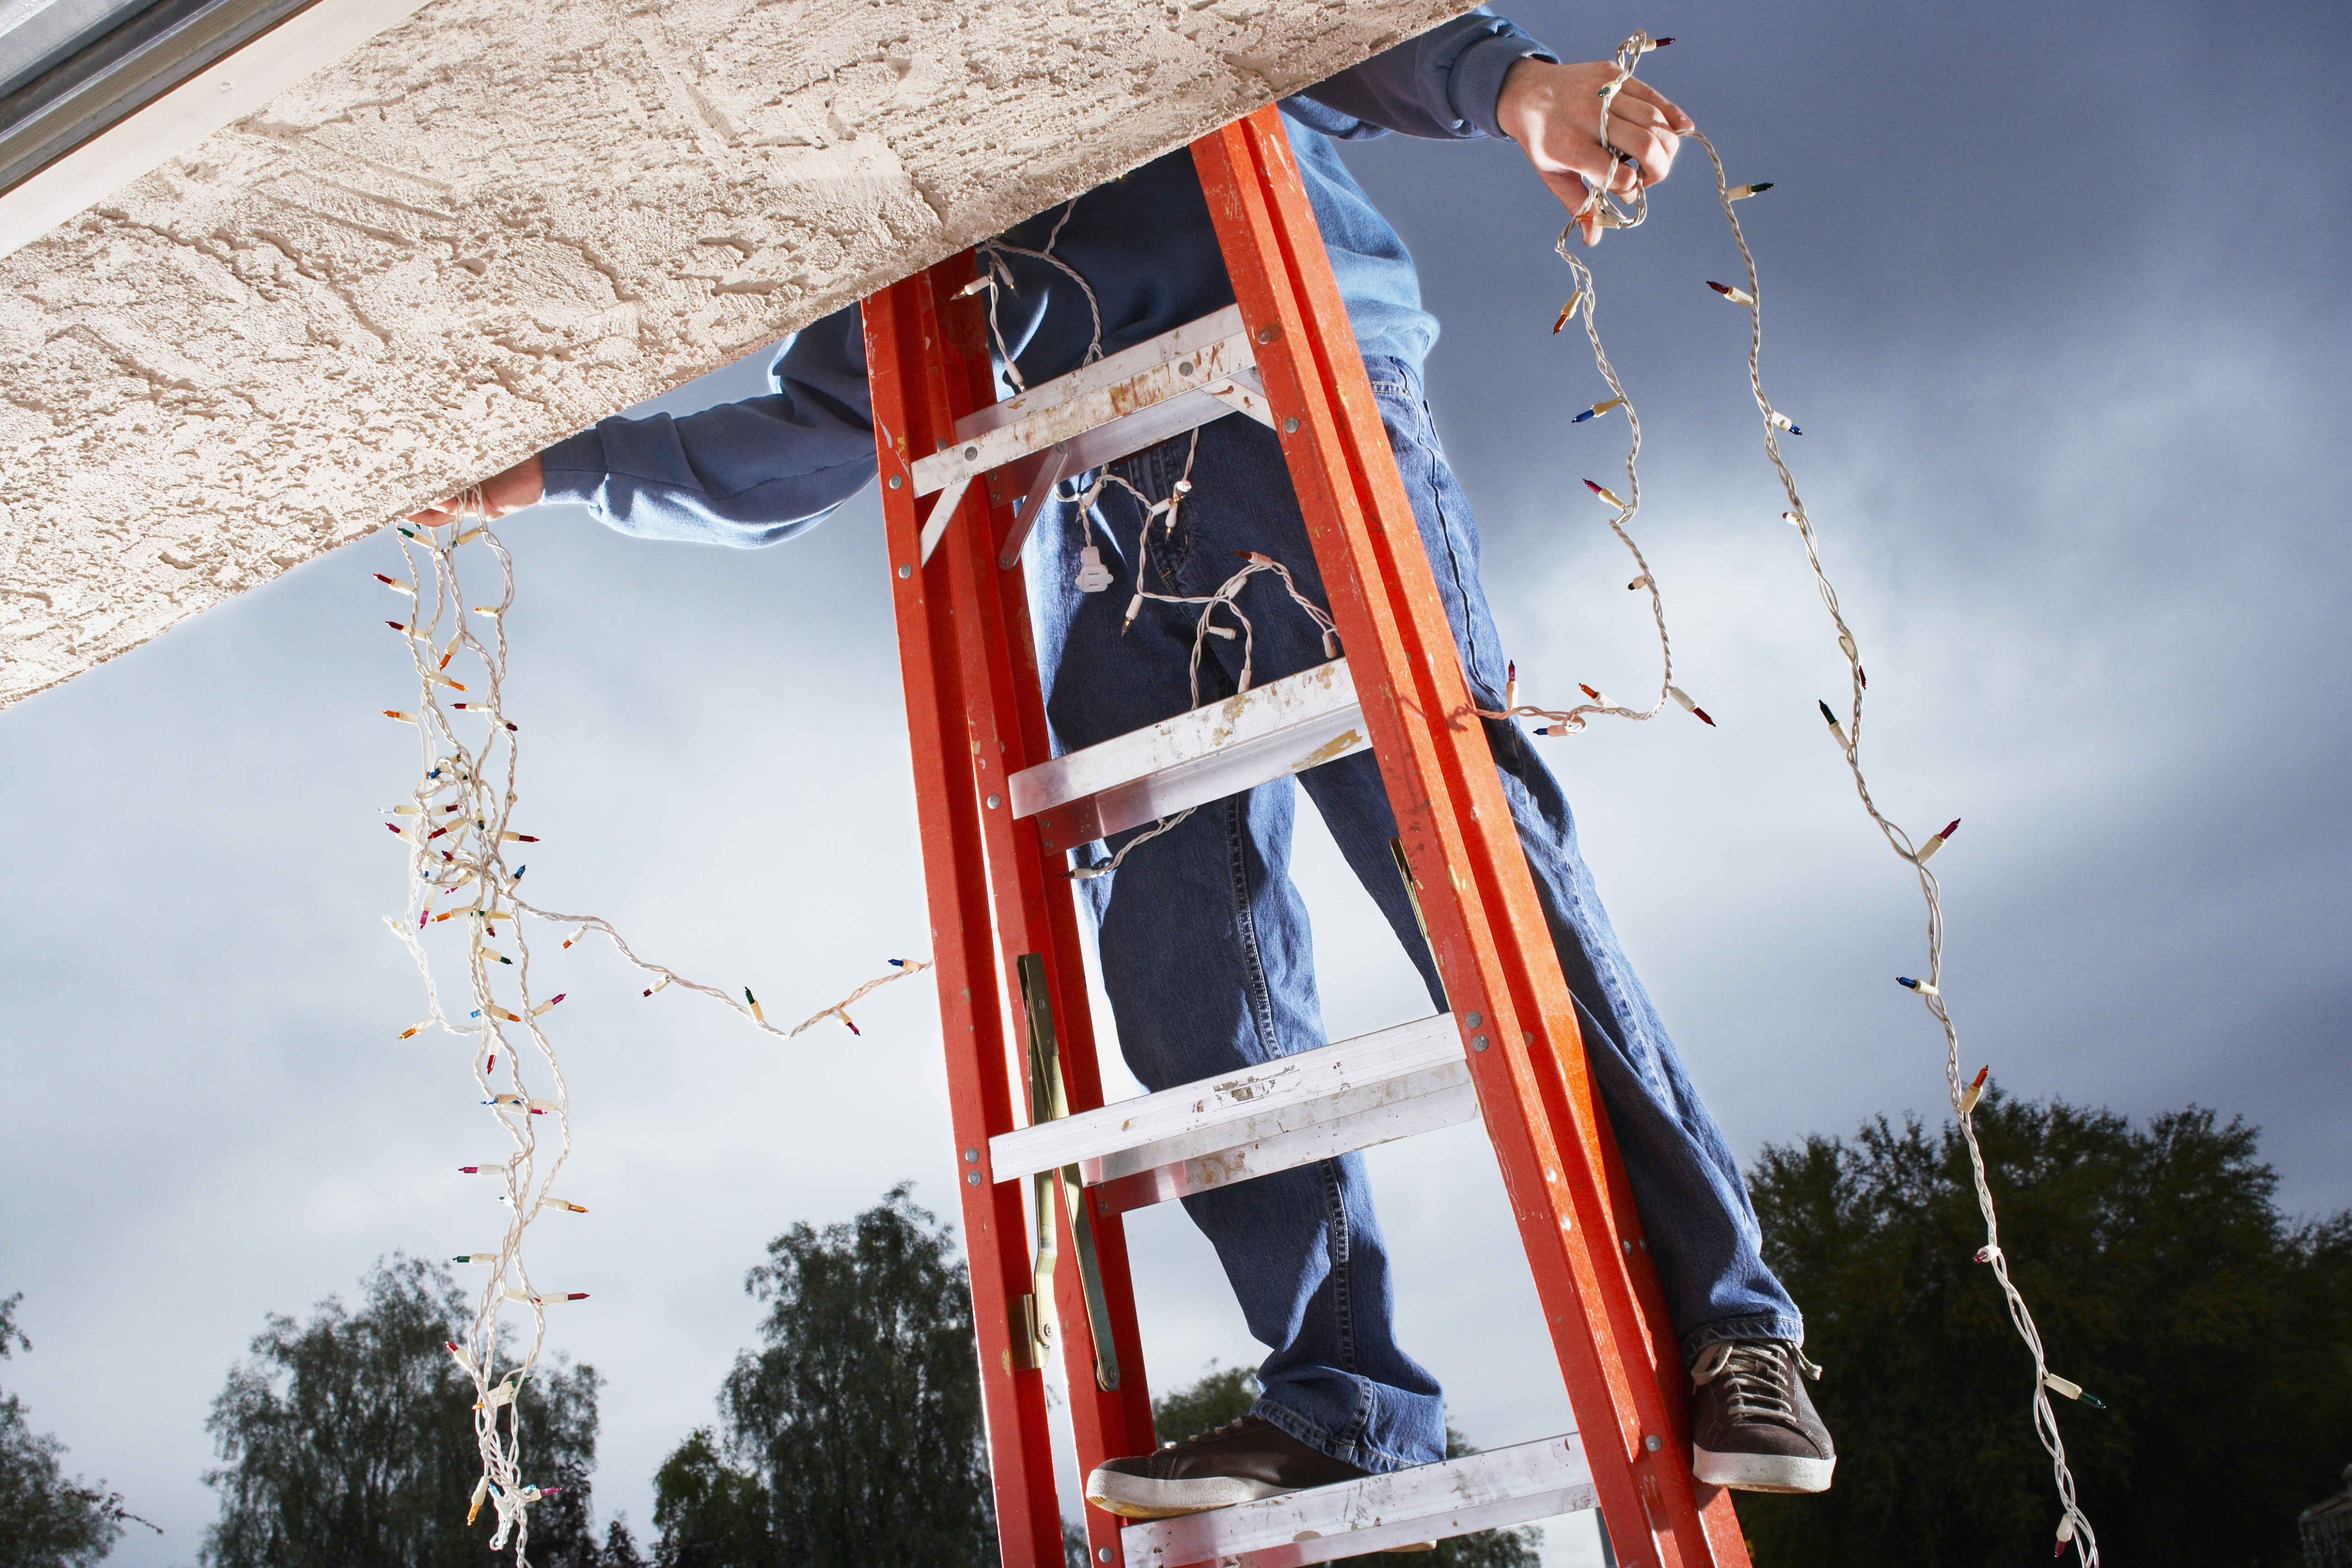 Hanging holiday lights puts your feet in danger...proceed with caution or hire a pro!